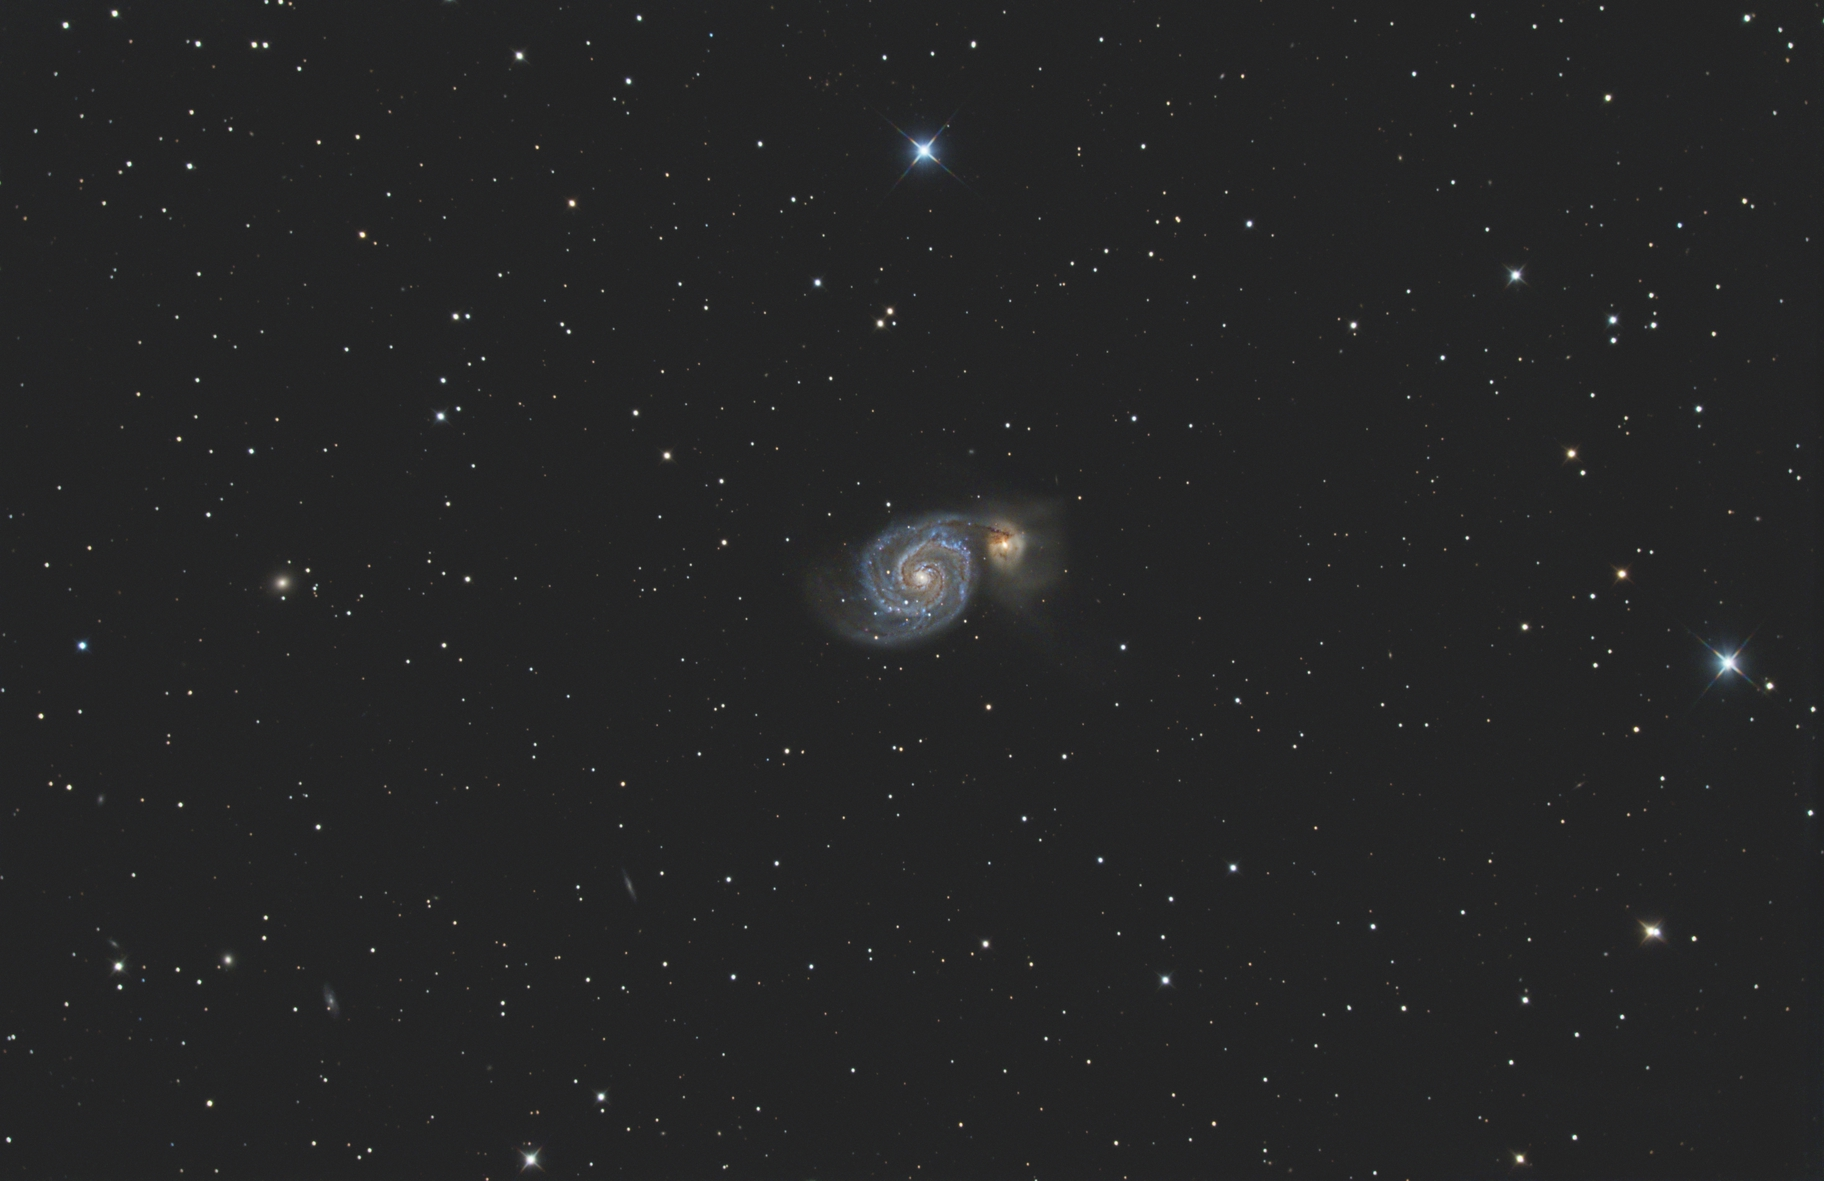 M51 taken with the ZWO ASI071MC-Pro camera and the AT6RC scope.